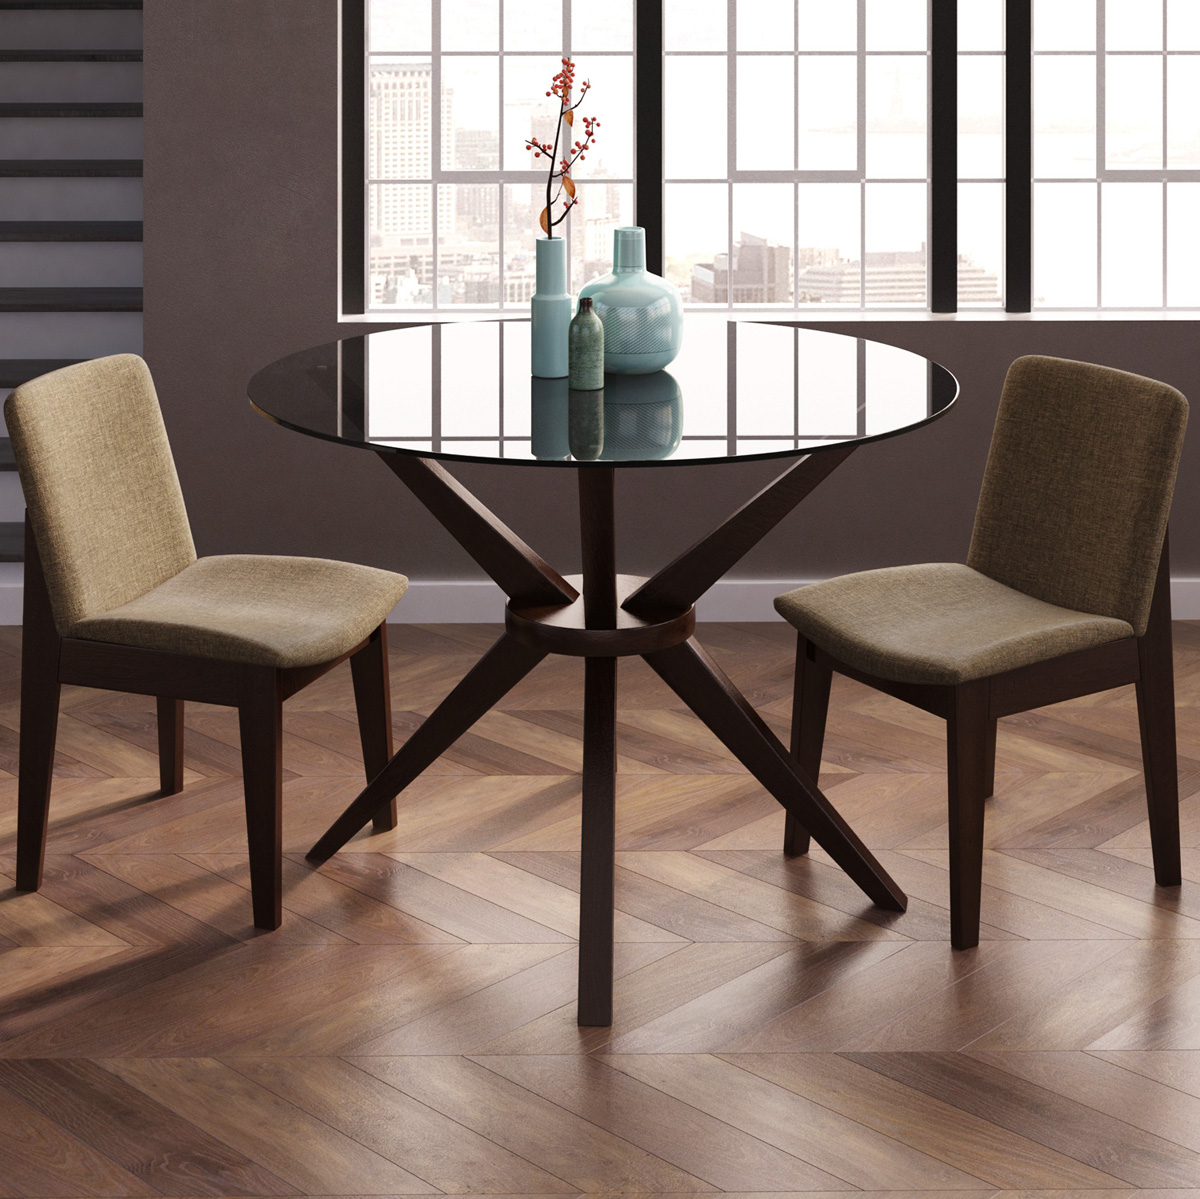 Charmful Magna Round Glass Table Glass Room Table Round Glass Room Table houzz-02 Glass Dining Room Table